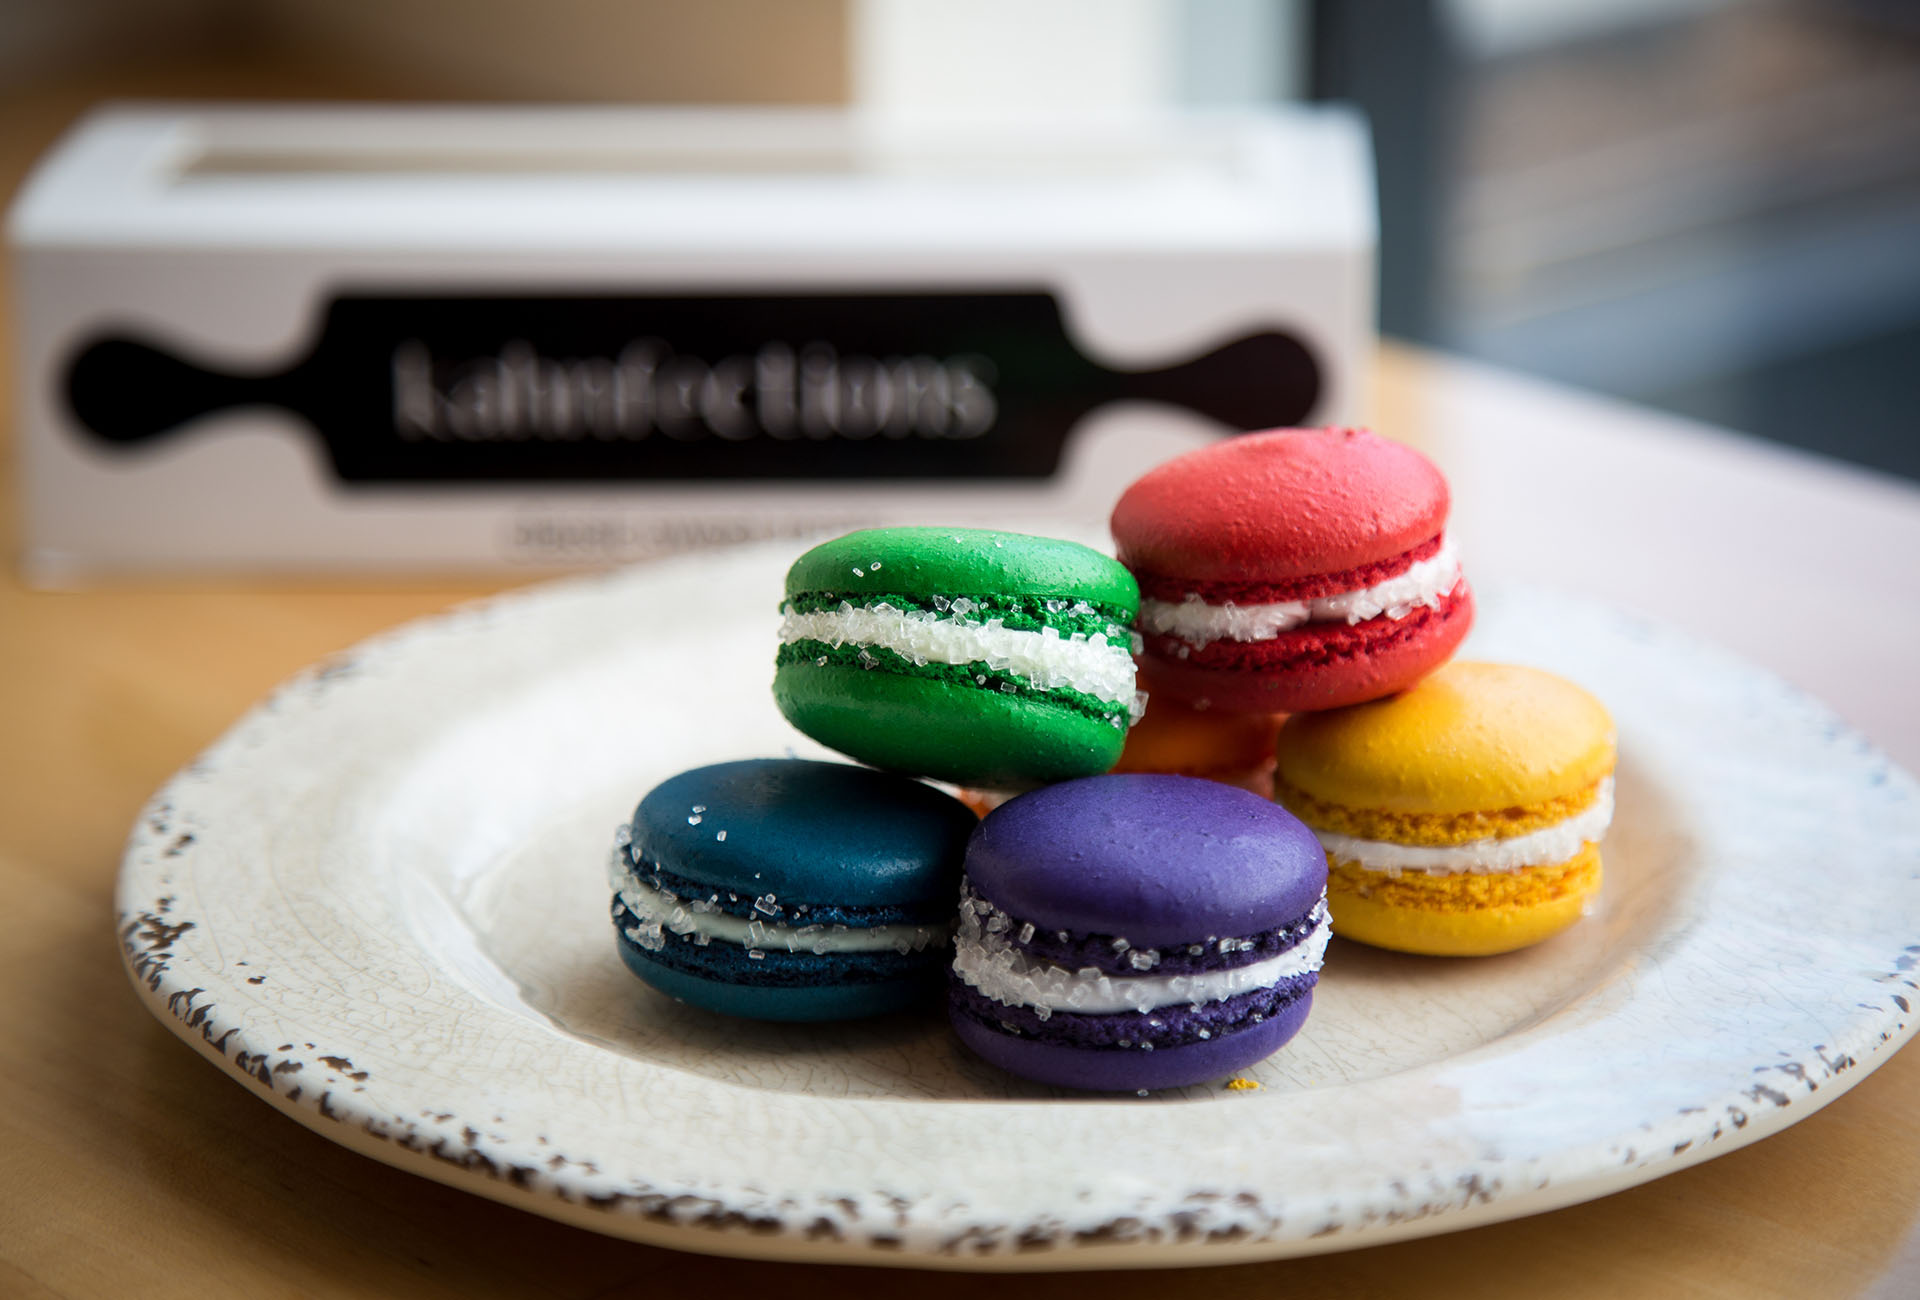 The Six Pride-themed Macarons are all cocktail flavored.